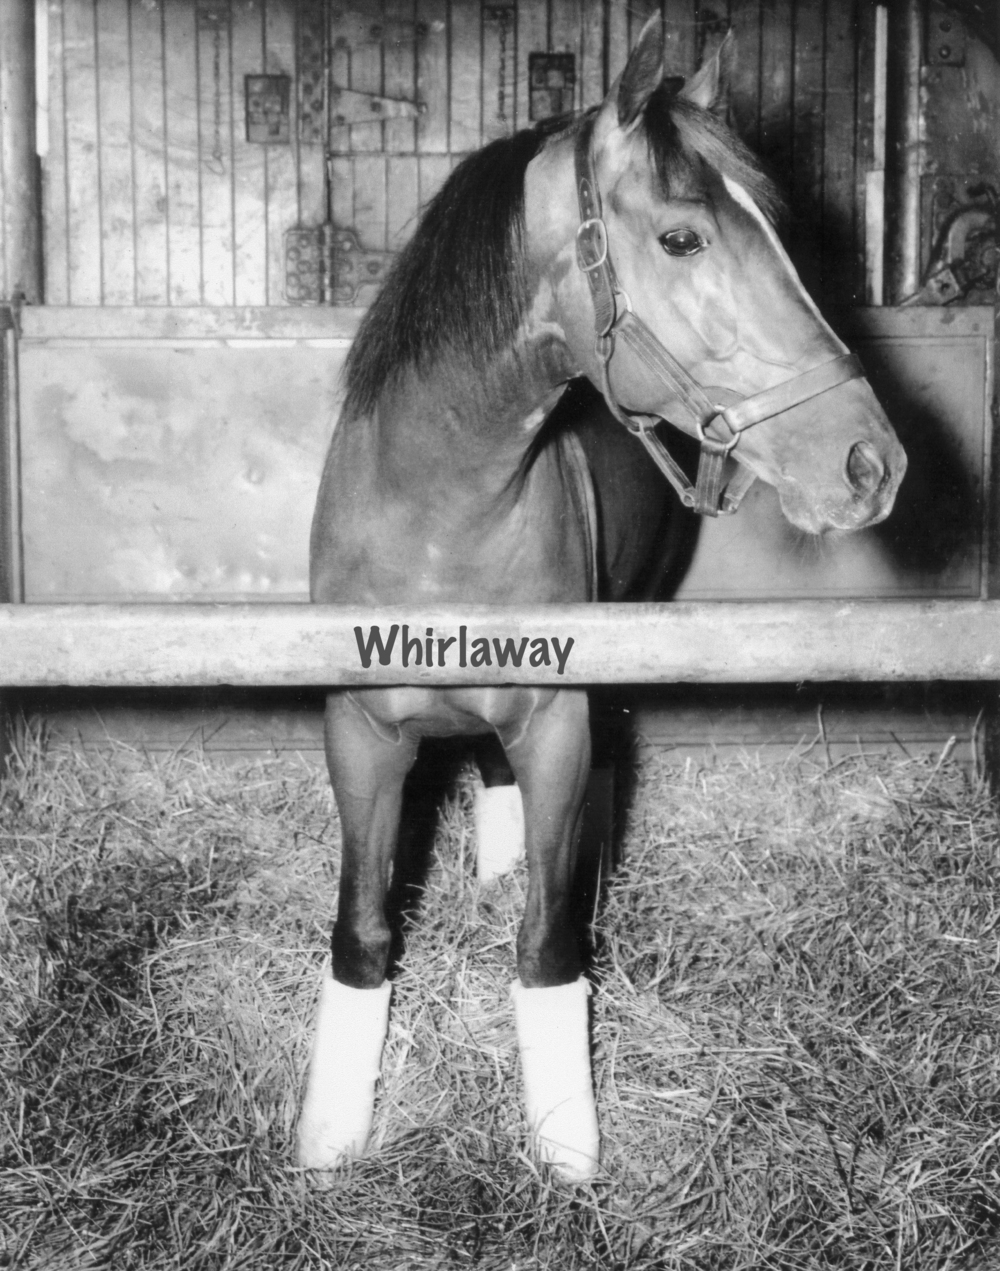 Whirlaway may have been slow of brain but he was fleet of hoof.